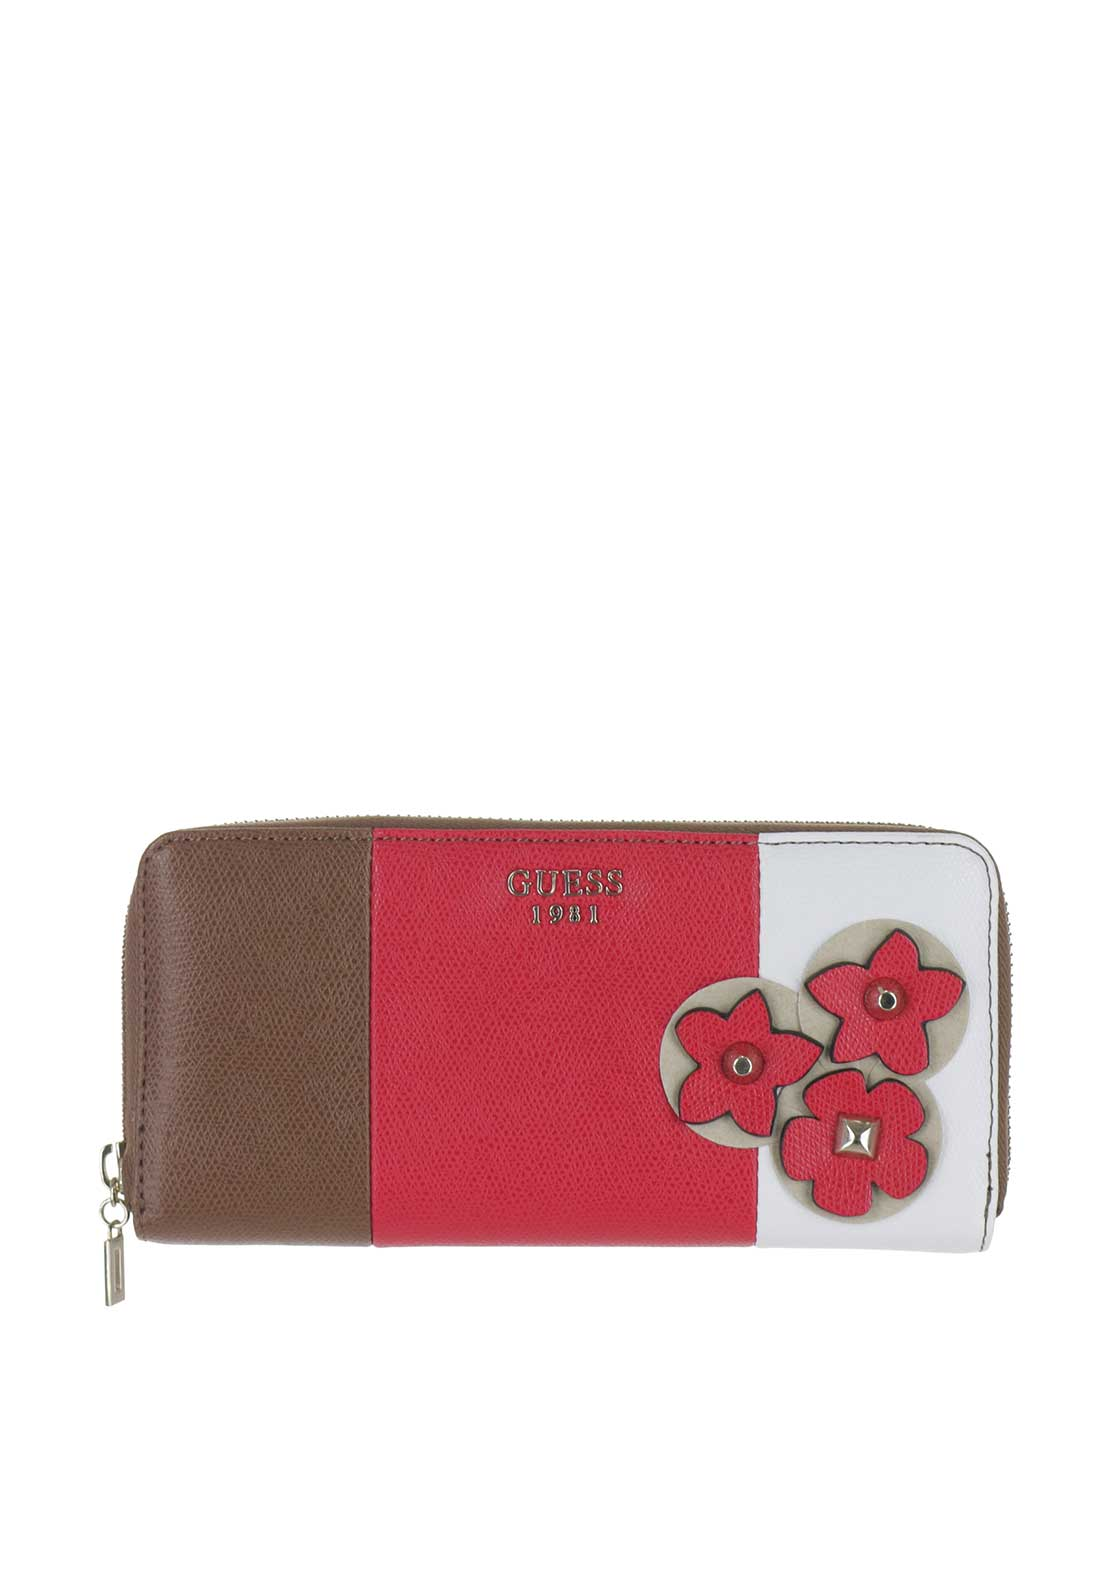 Guess Liya Flower Wristlet Purse Mocha Multi